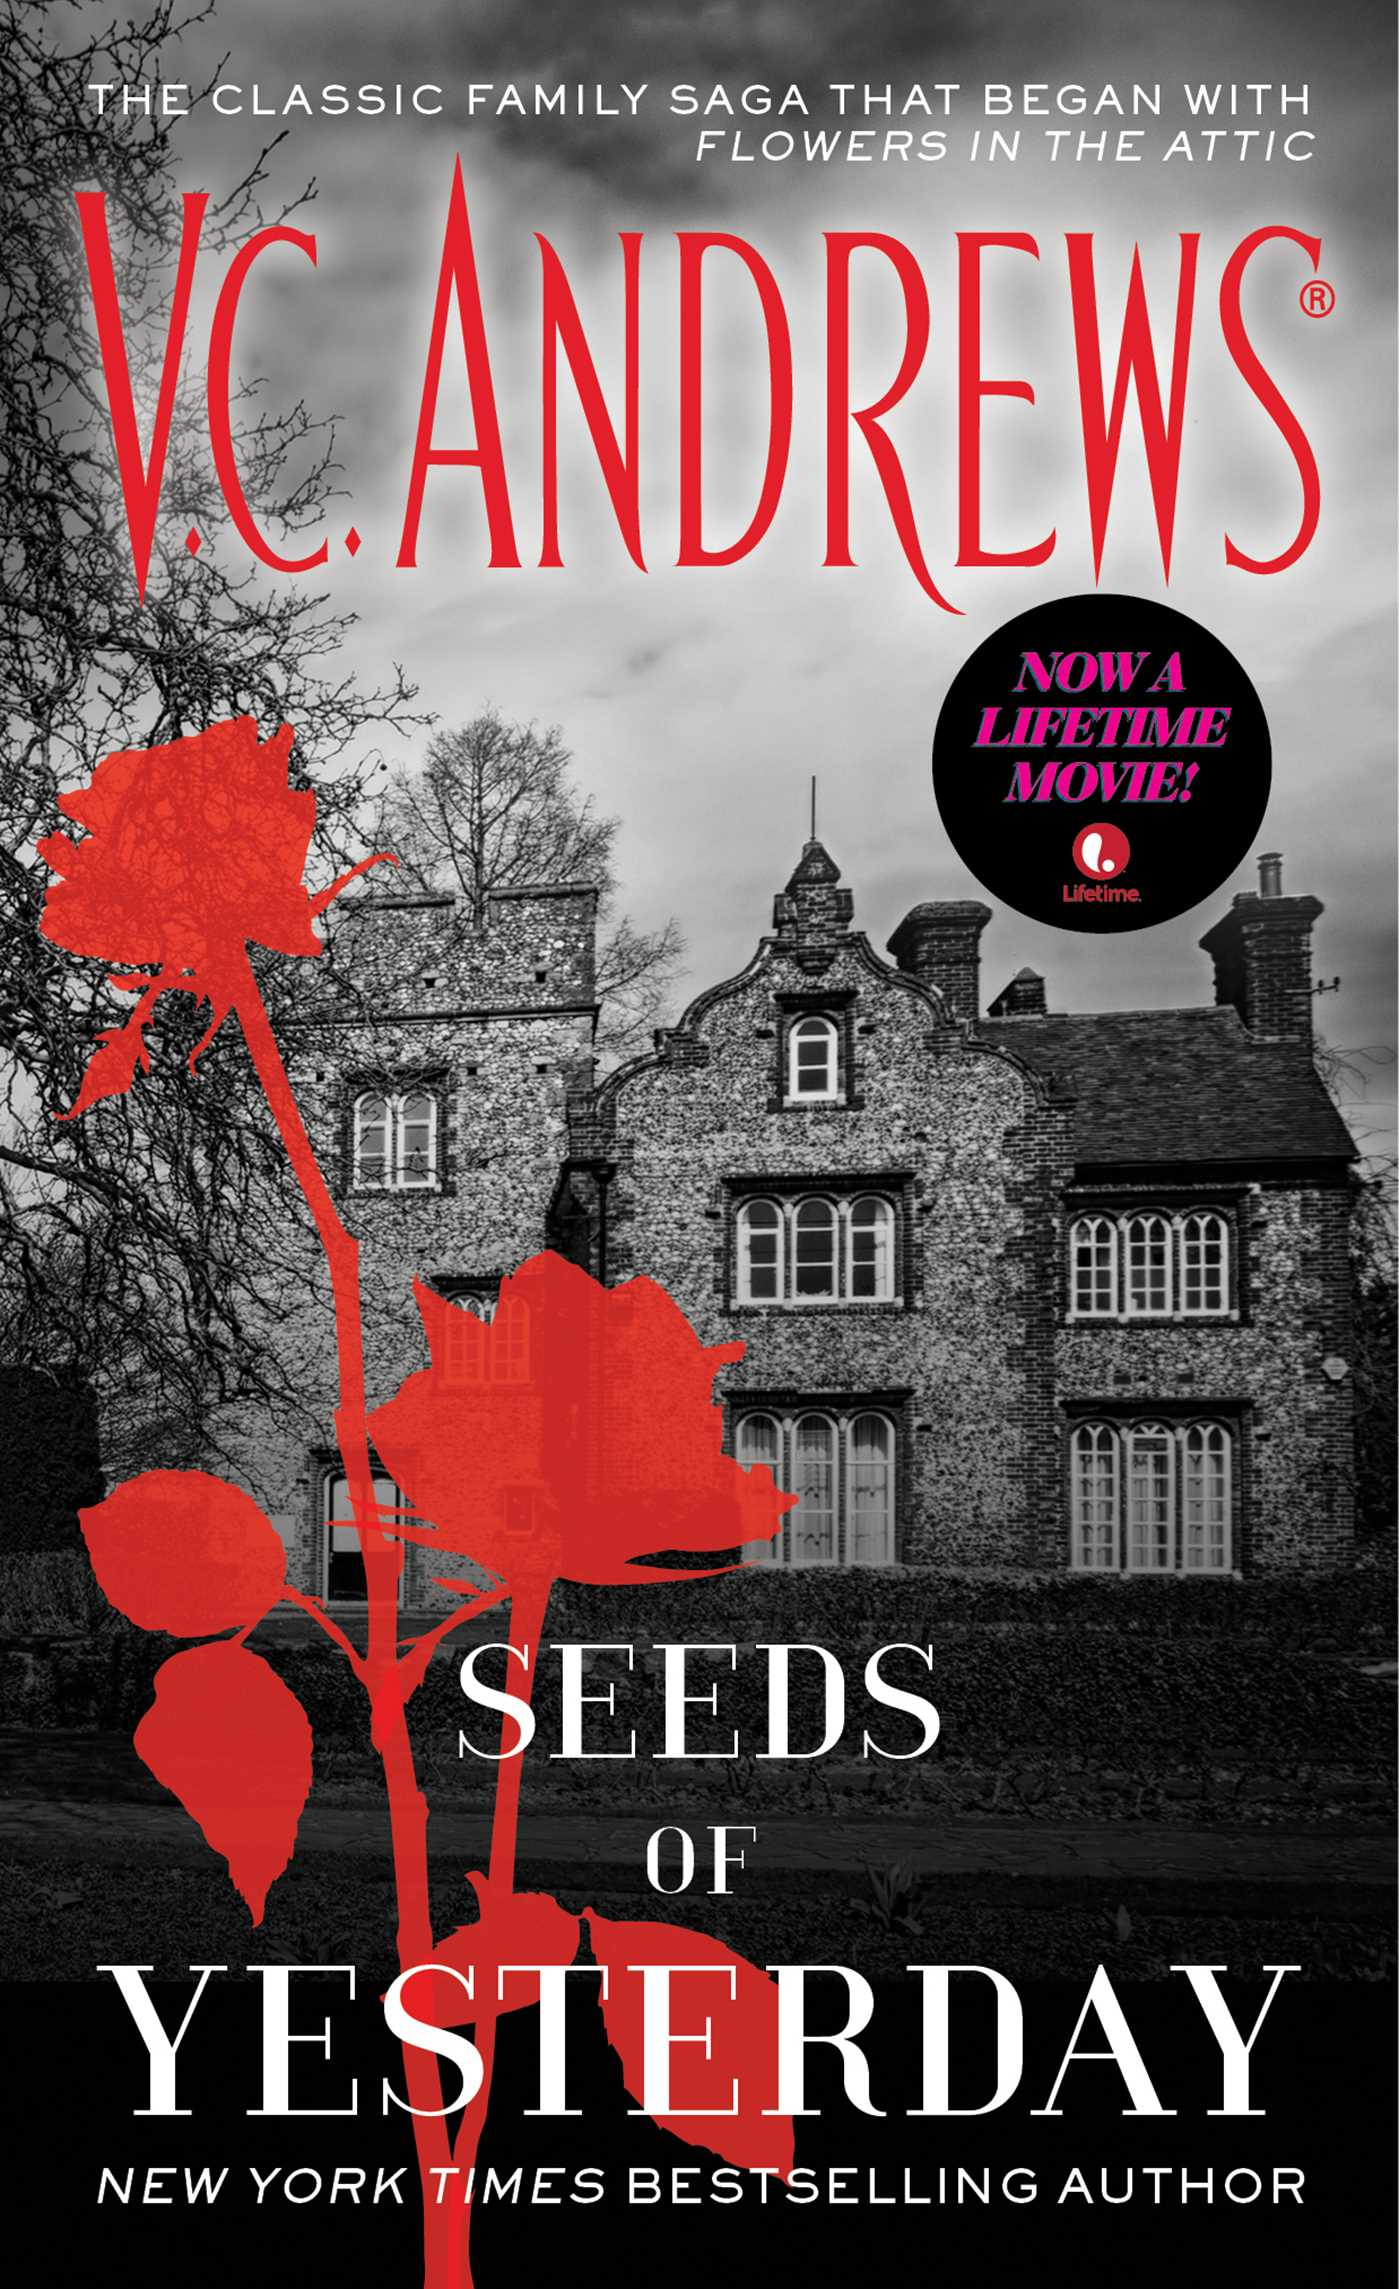 Seeds of Yesterday Book by V C Andrews